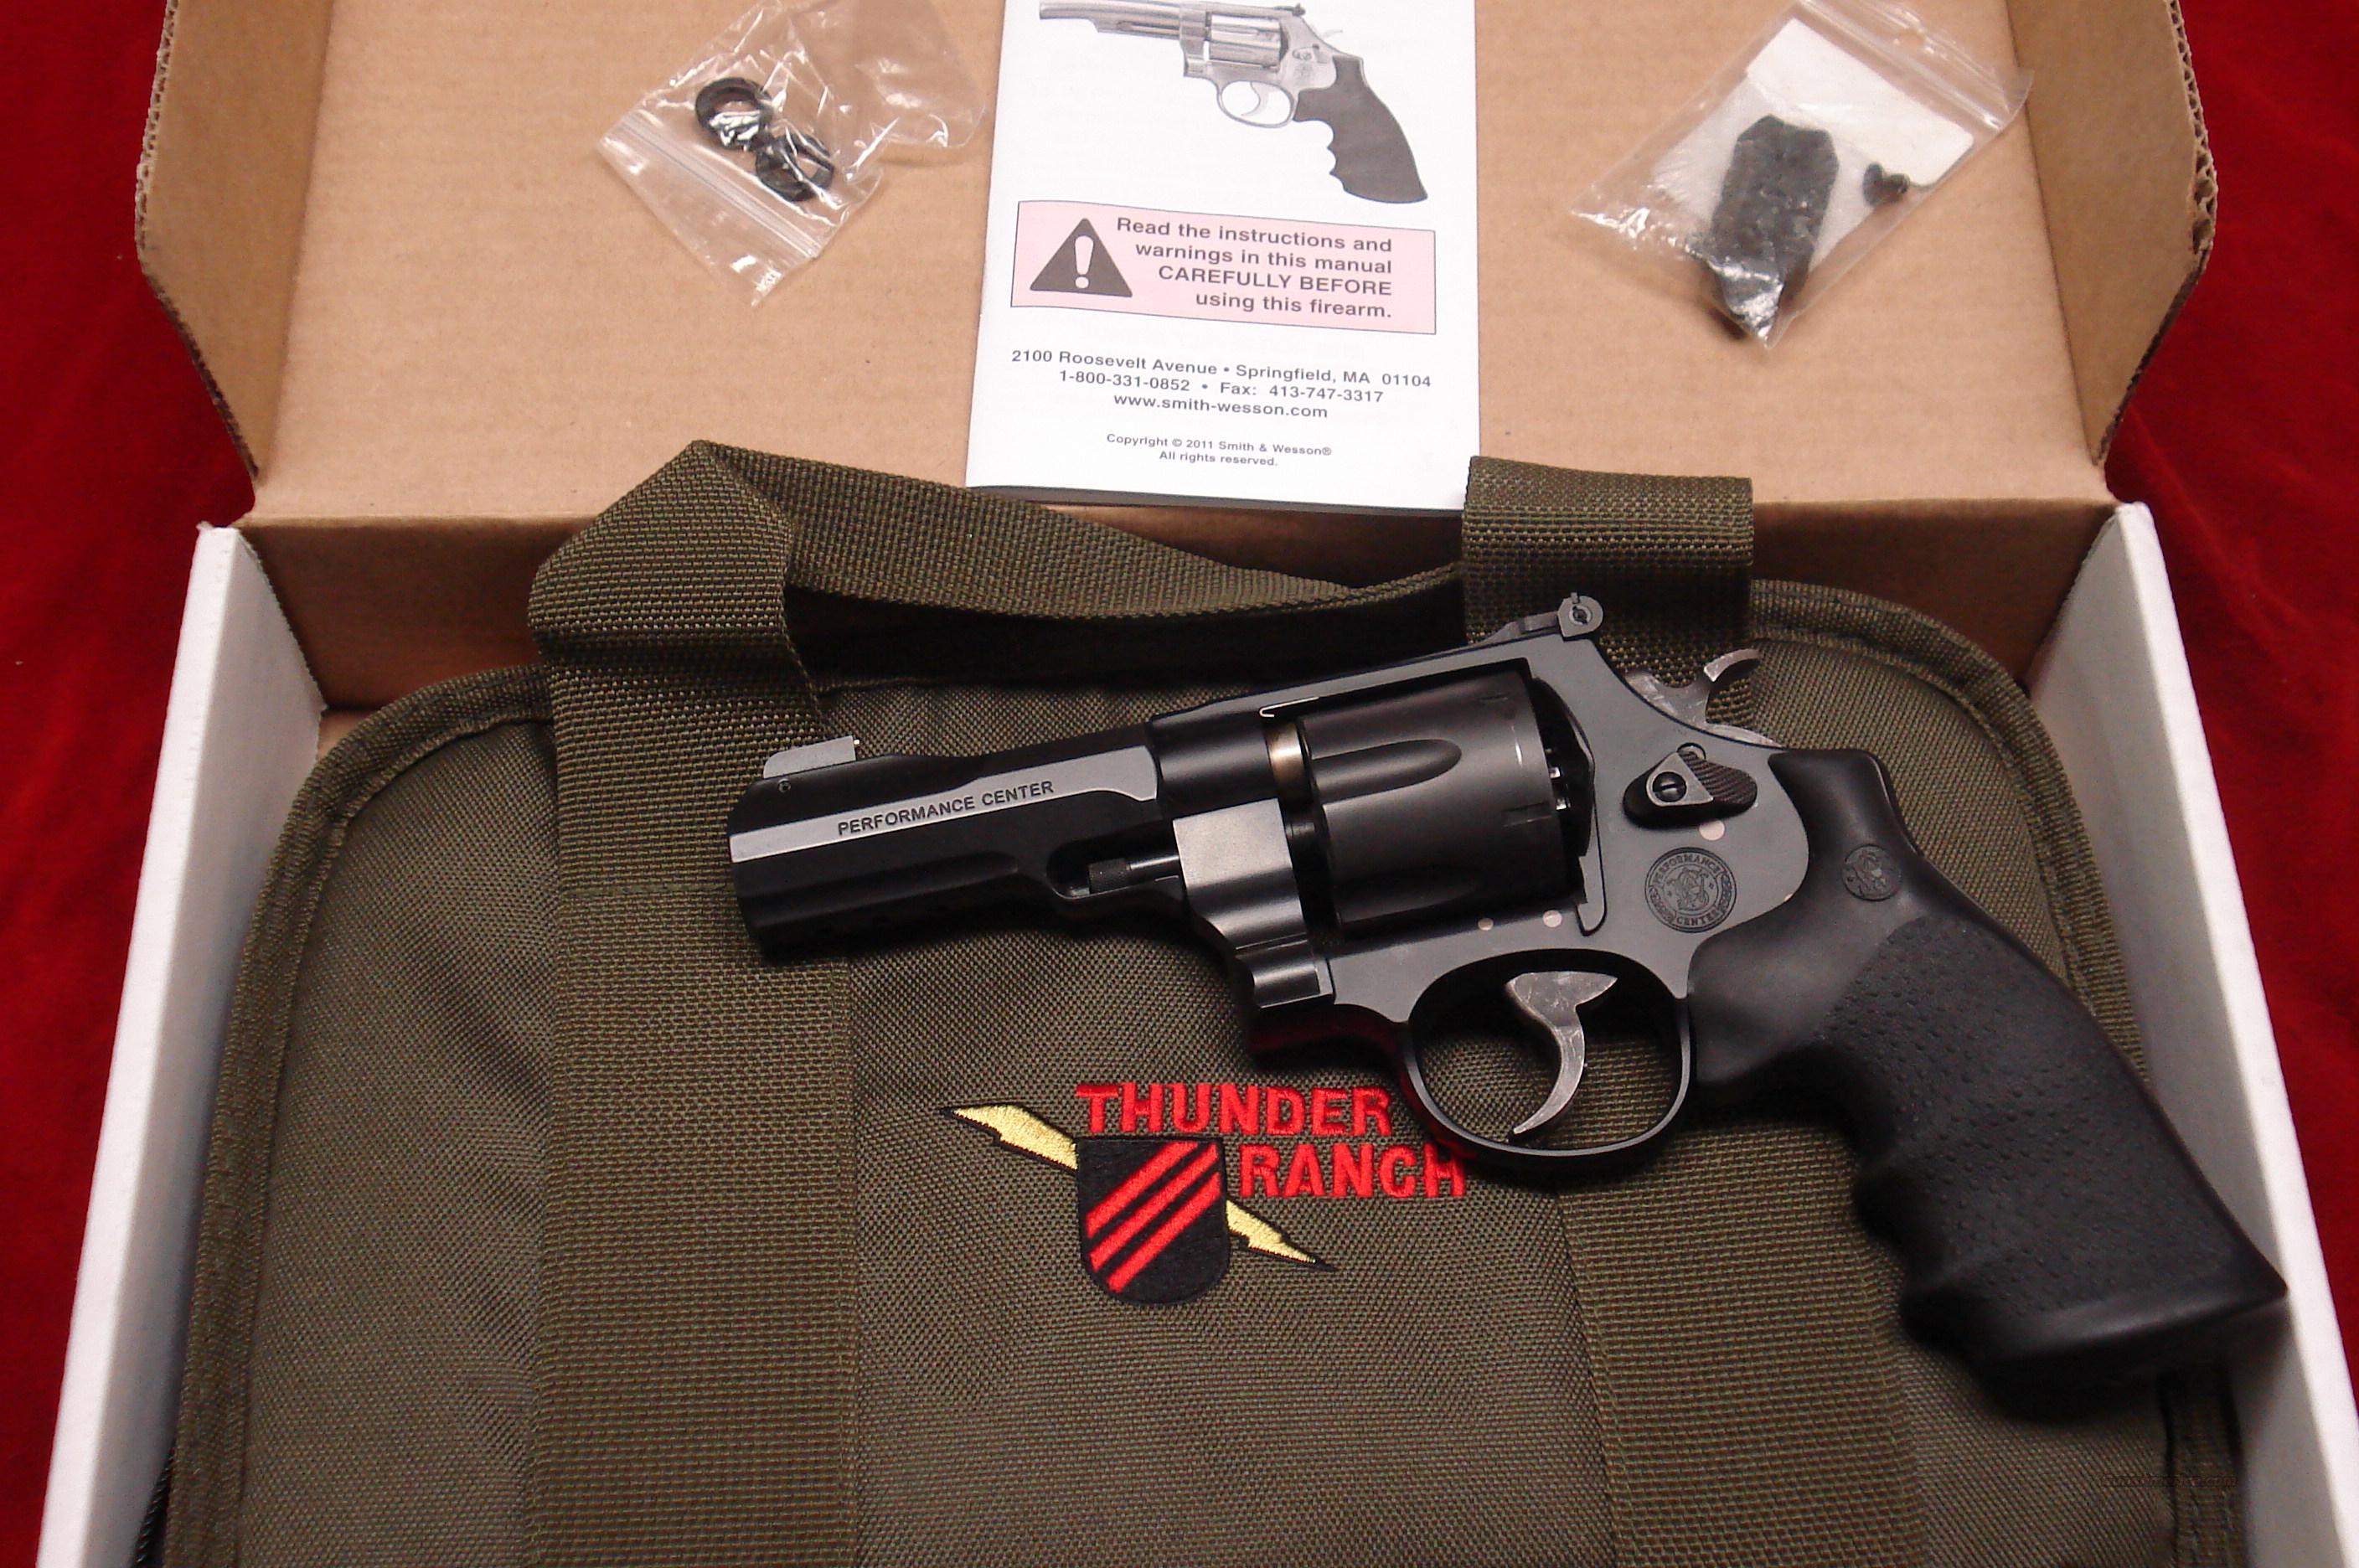 "SMITH AND WESSON MODEL 325 THUNDER RANCH PERFORMANCE CENTER 45ACP 4"" LIKE NEW  Guns > Pistols > Smith & Wesson Revolvers > Performance Center"